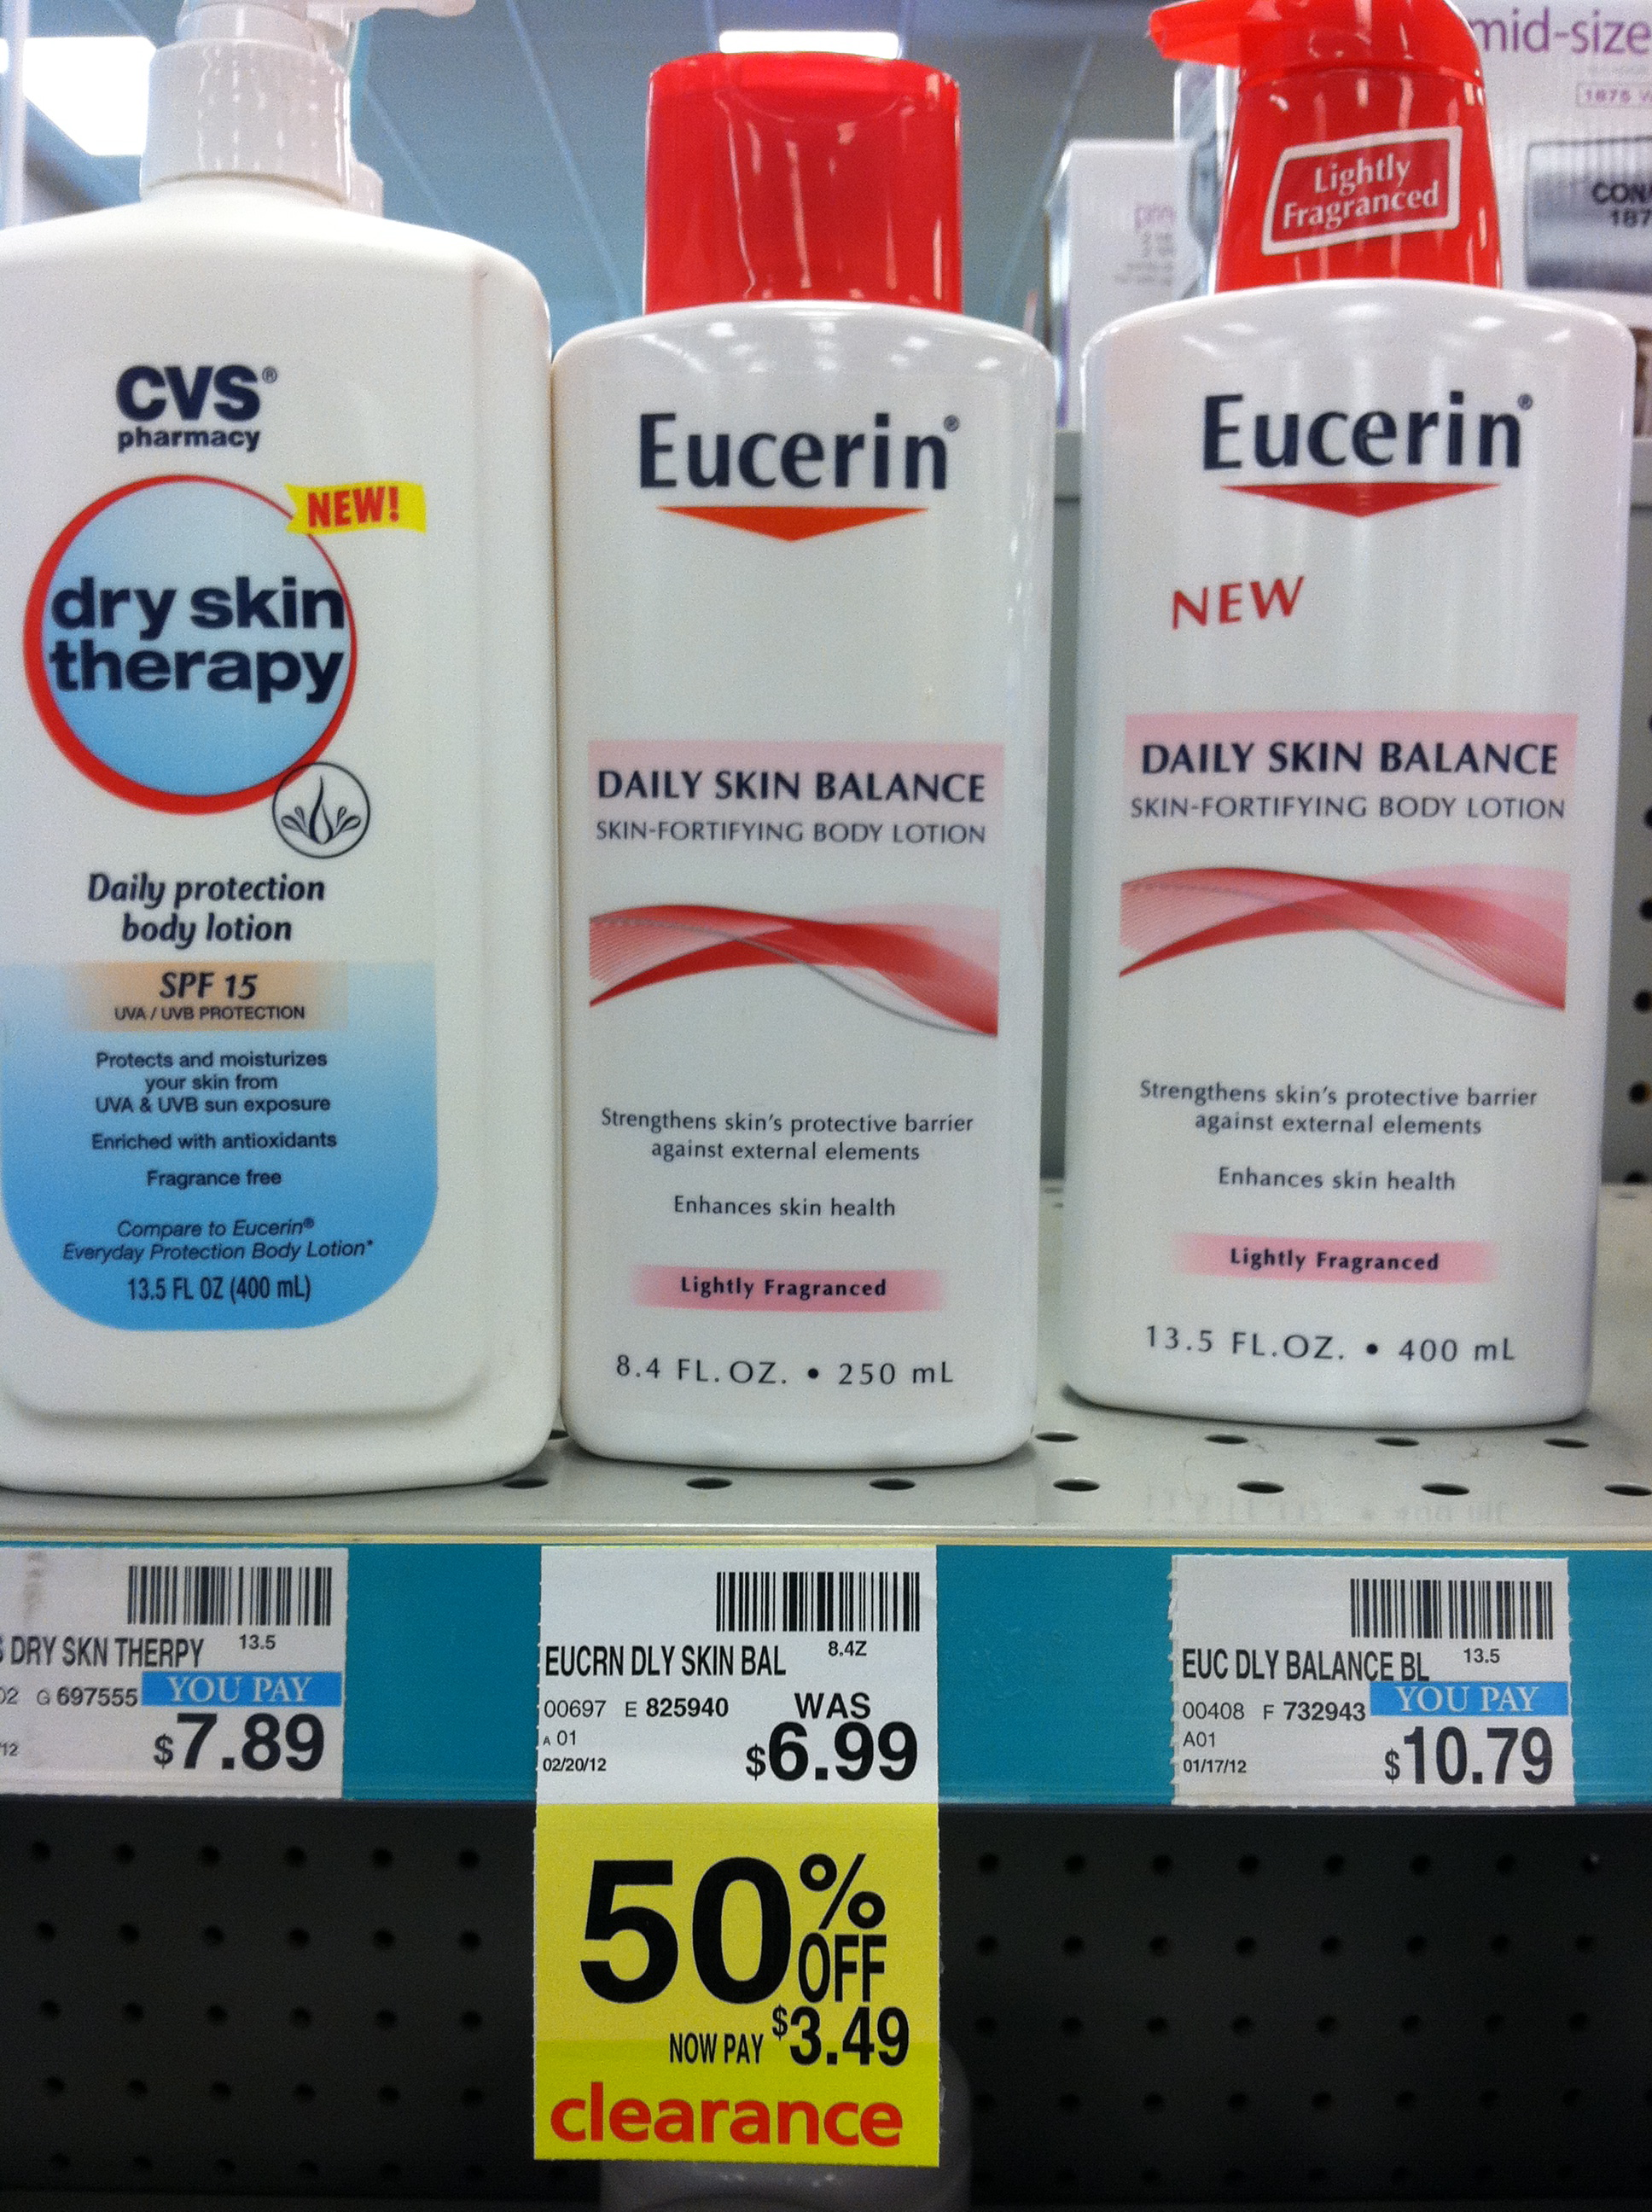 image regarding Eucerin Printable Coupon titled CVS promotions eucerin